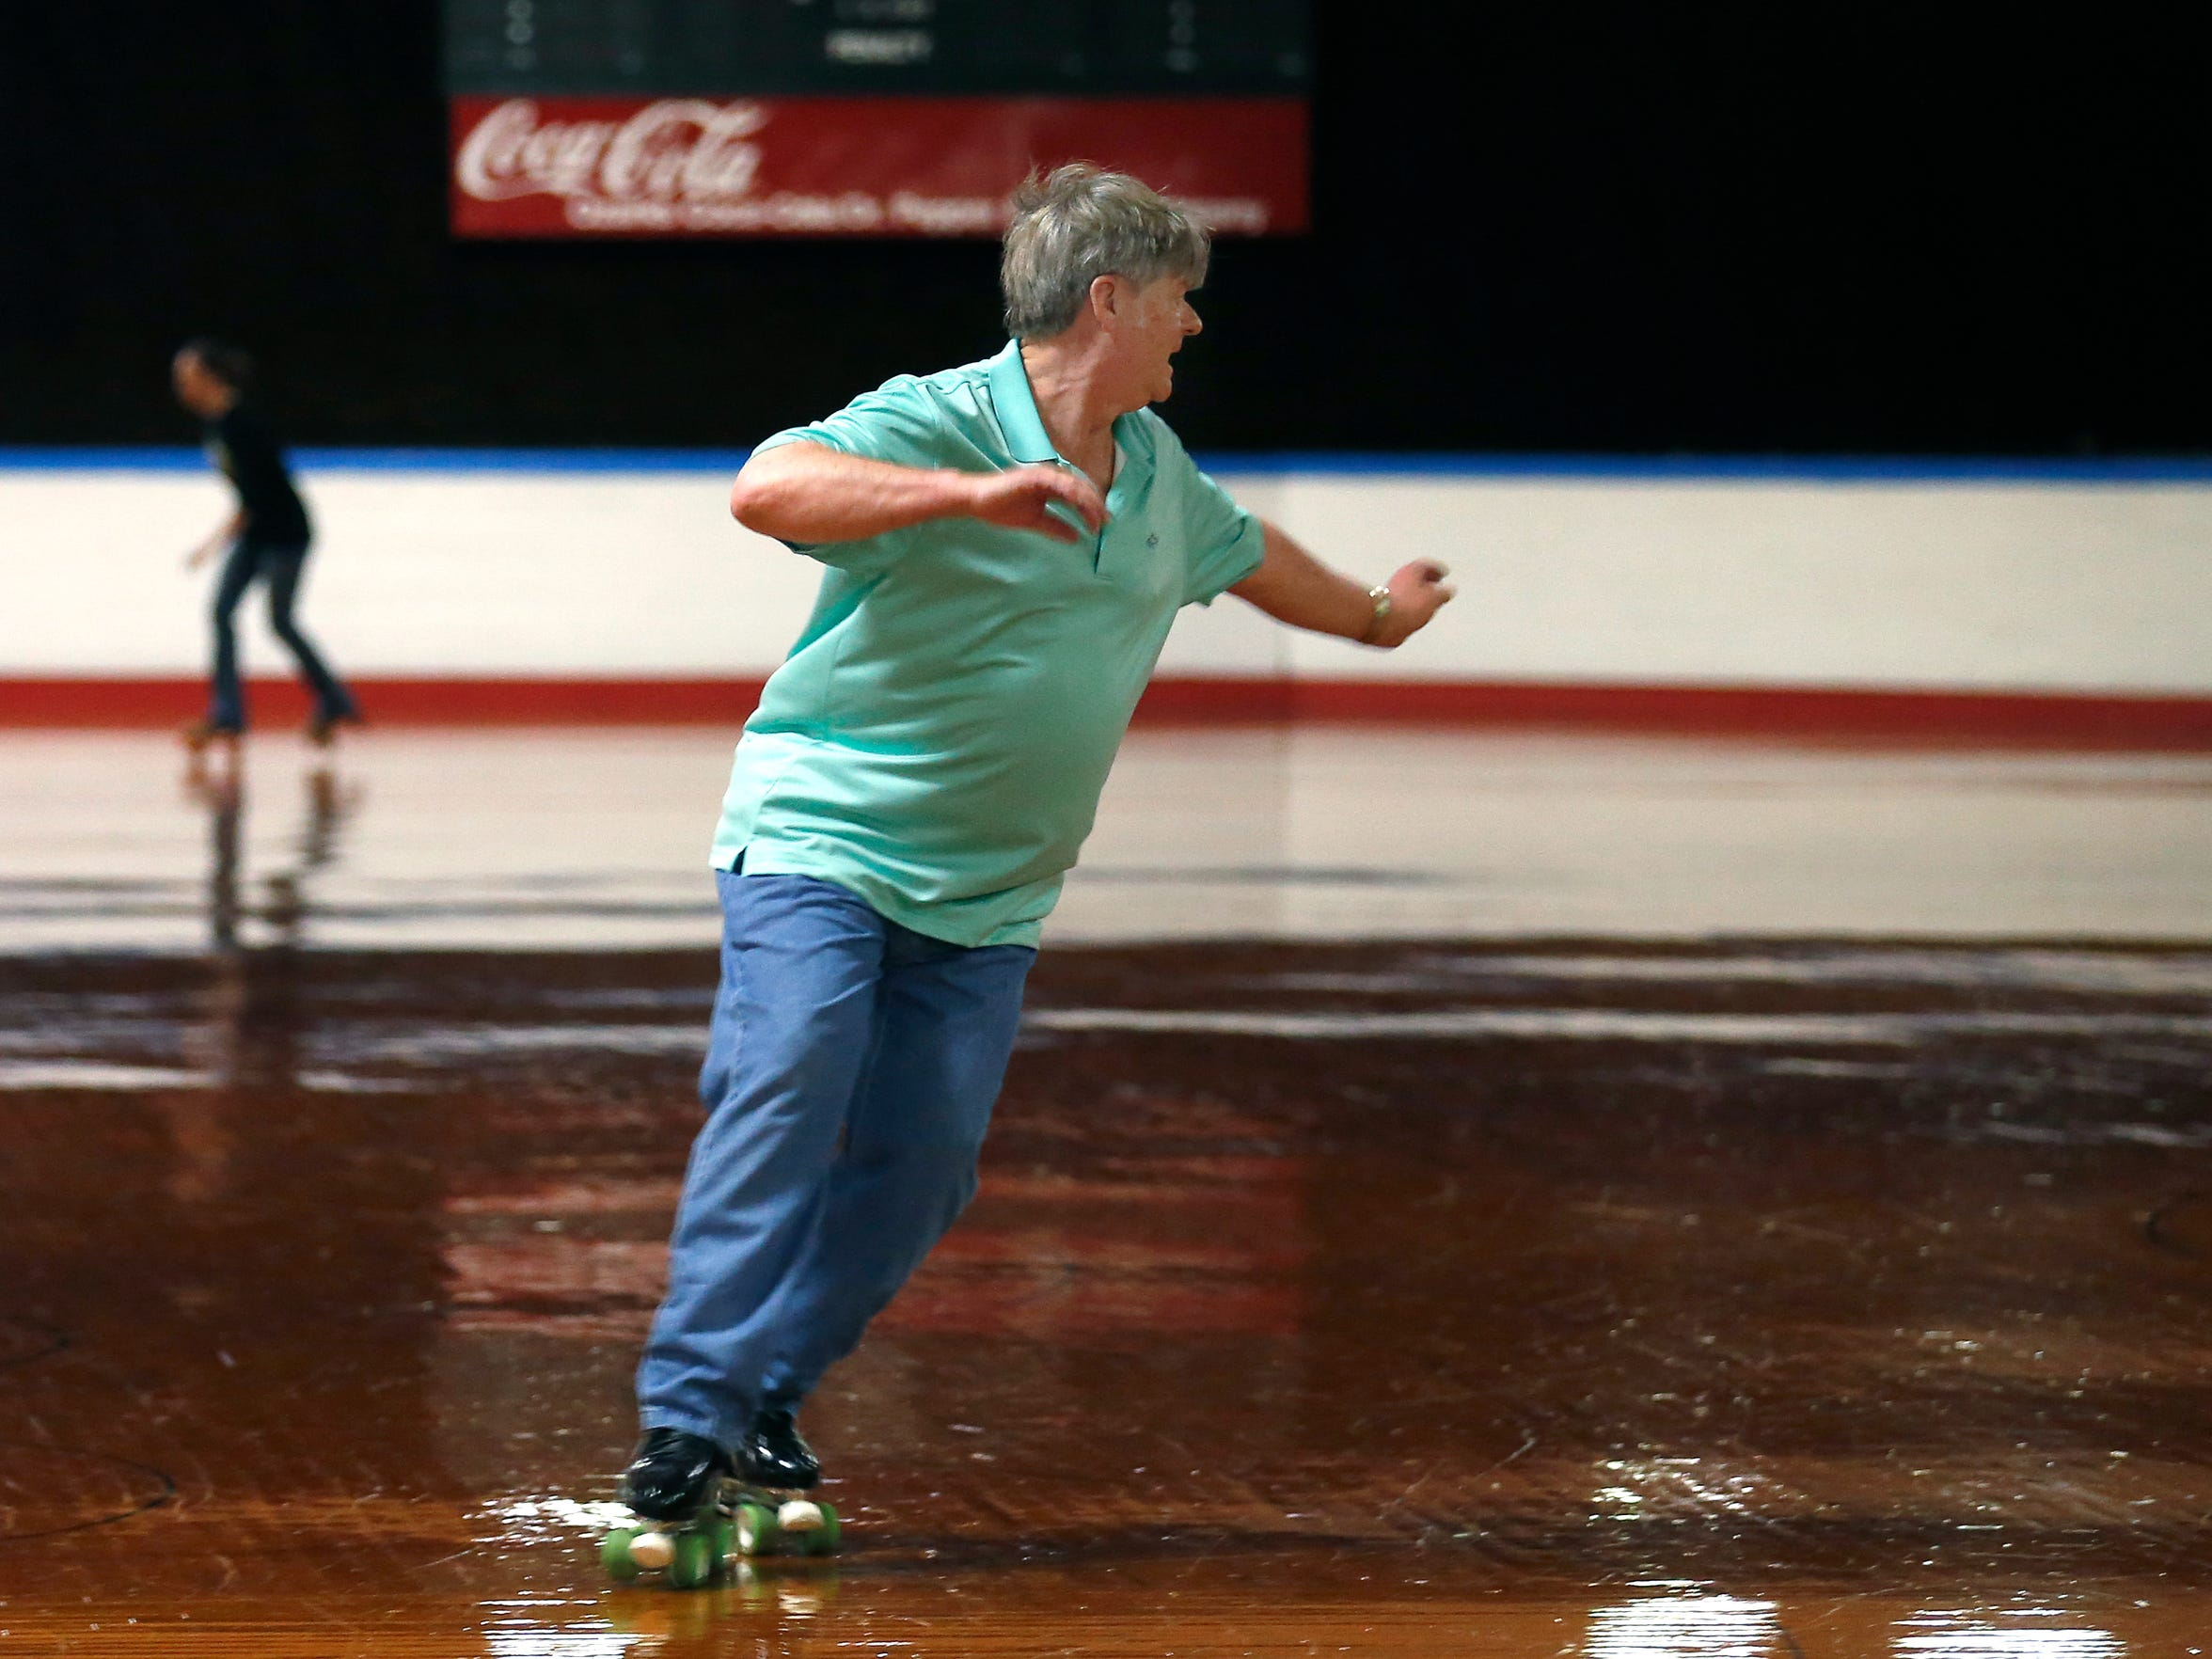 Doyle Crews, 62, who's knows as Dancing Doyle at the skate rink, dances to the music as he roller skates around Skateland on Sunday, Feb. 21, 2016.